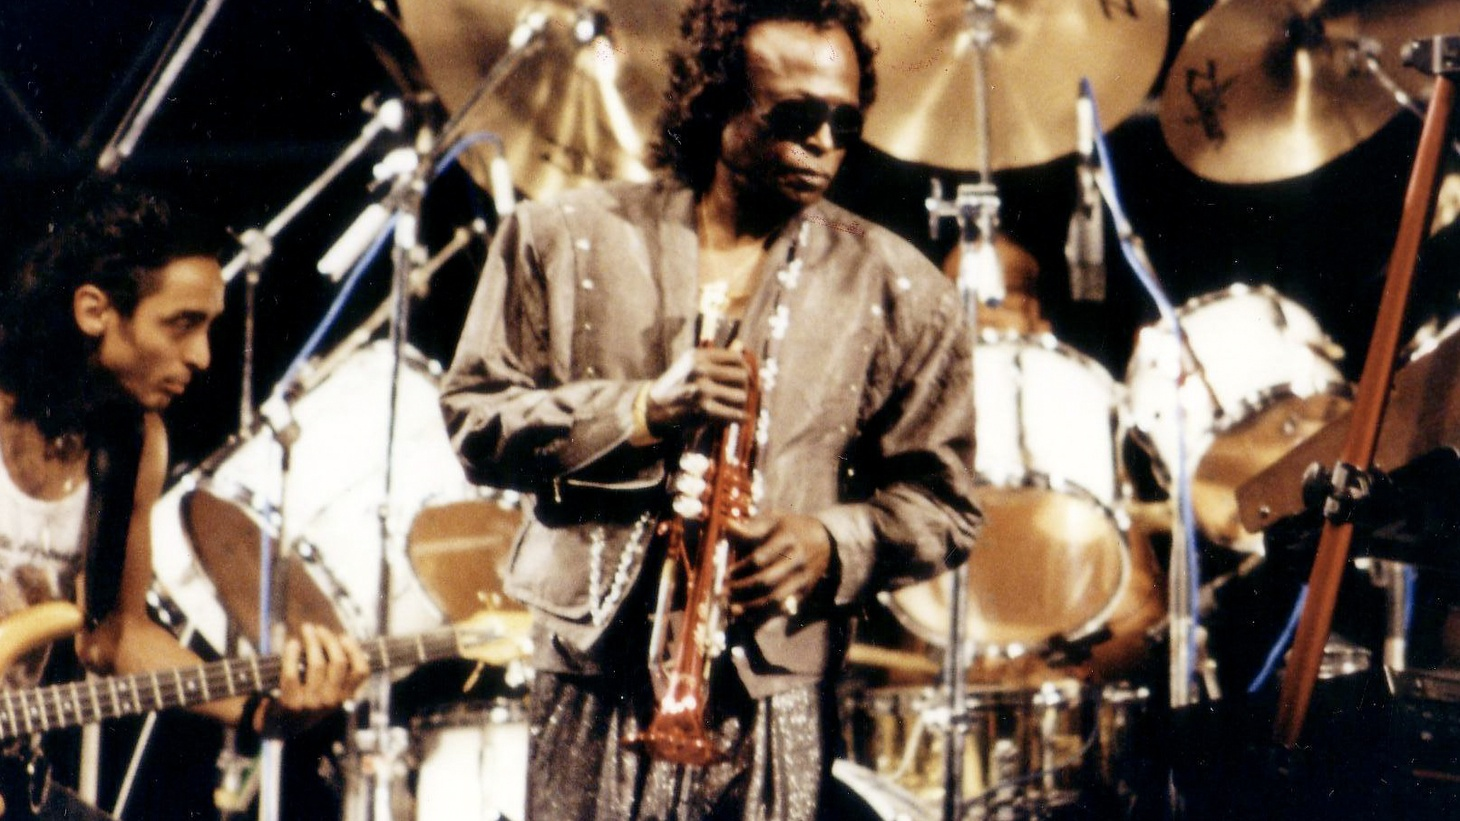 Bo Leibowitz spins all Miles Davis on this special edition of Strictly Jazz to celebrate the 90th anniversary of the music legend's birth.